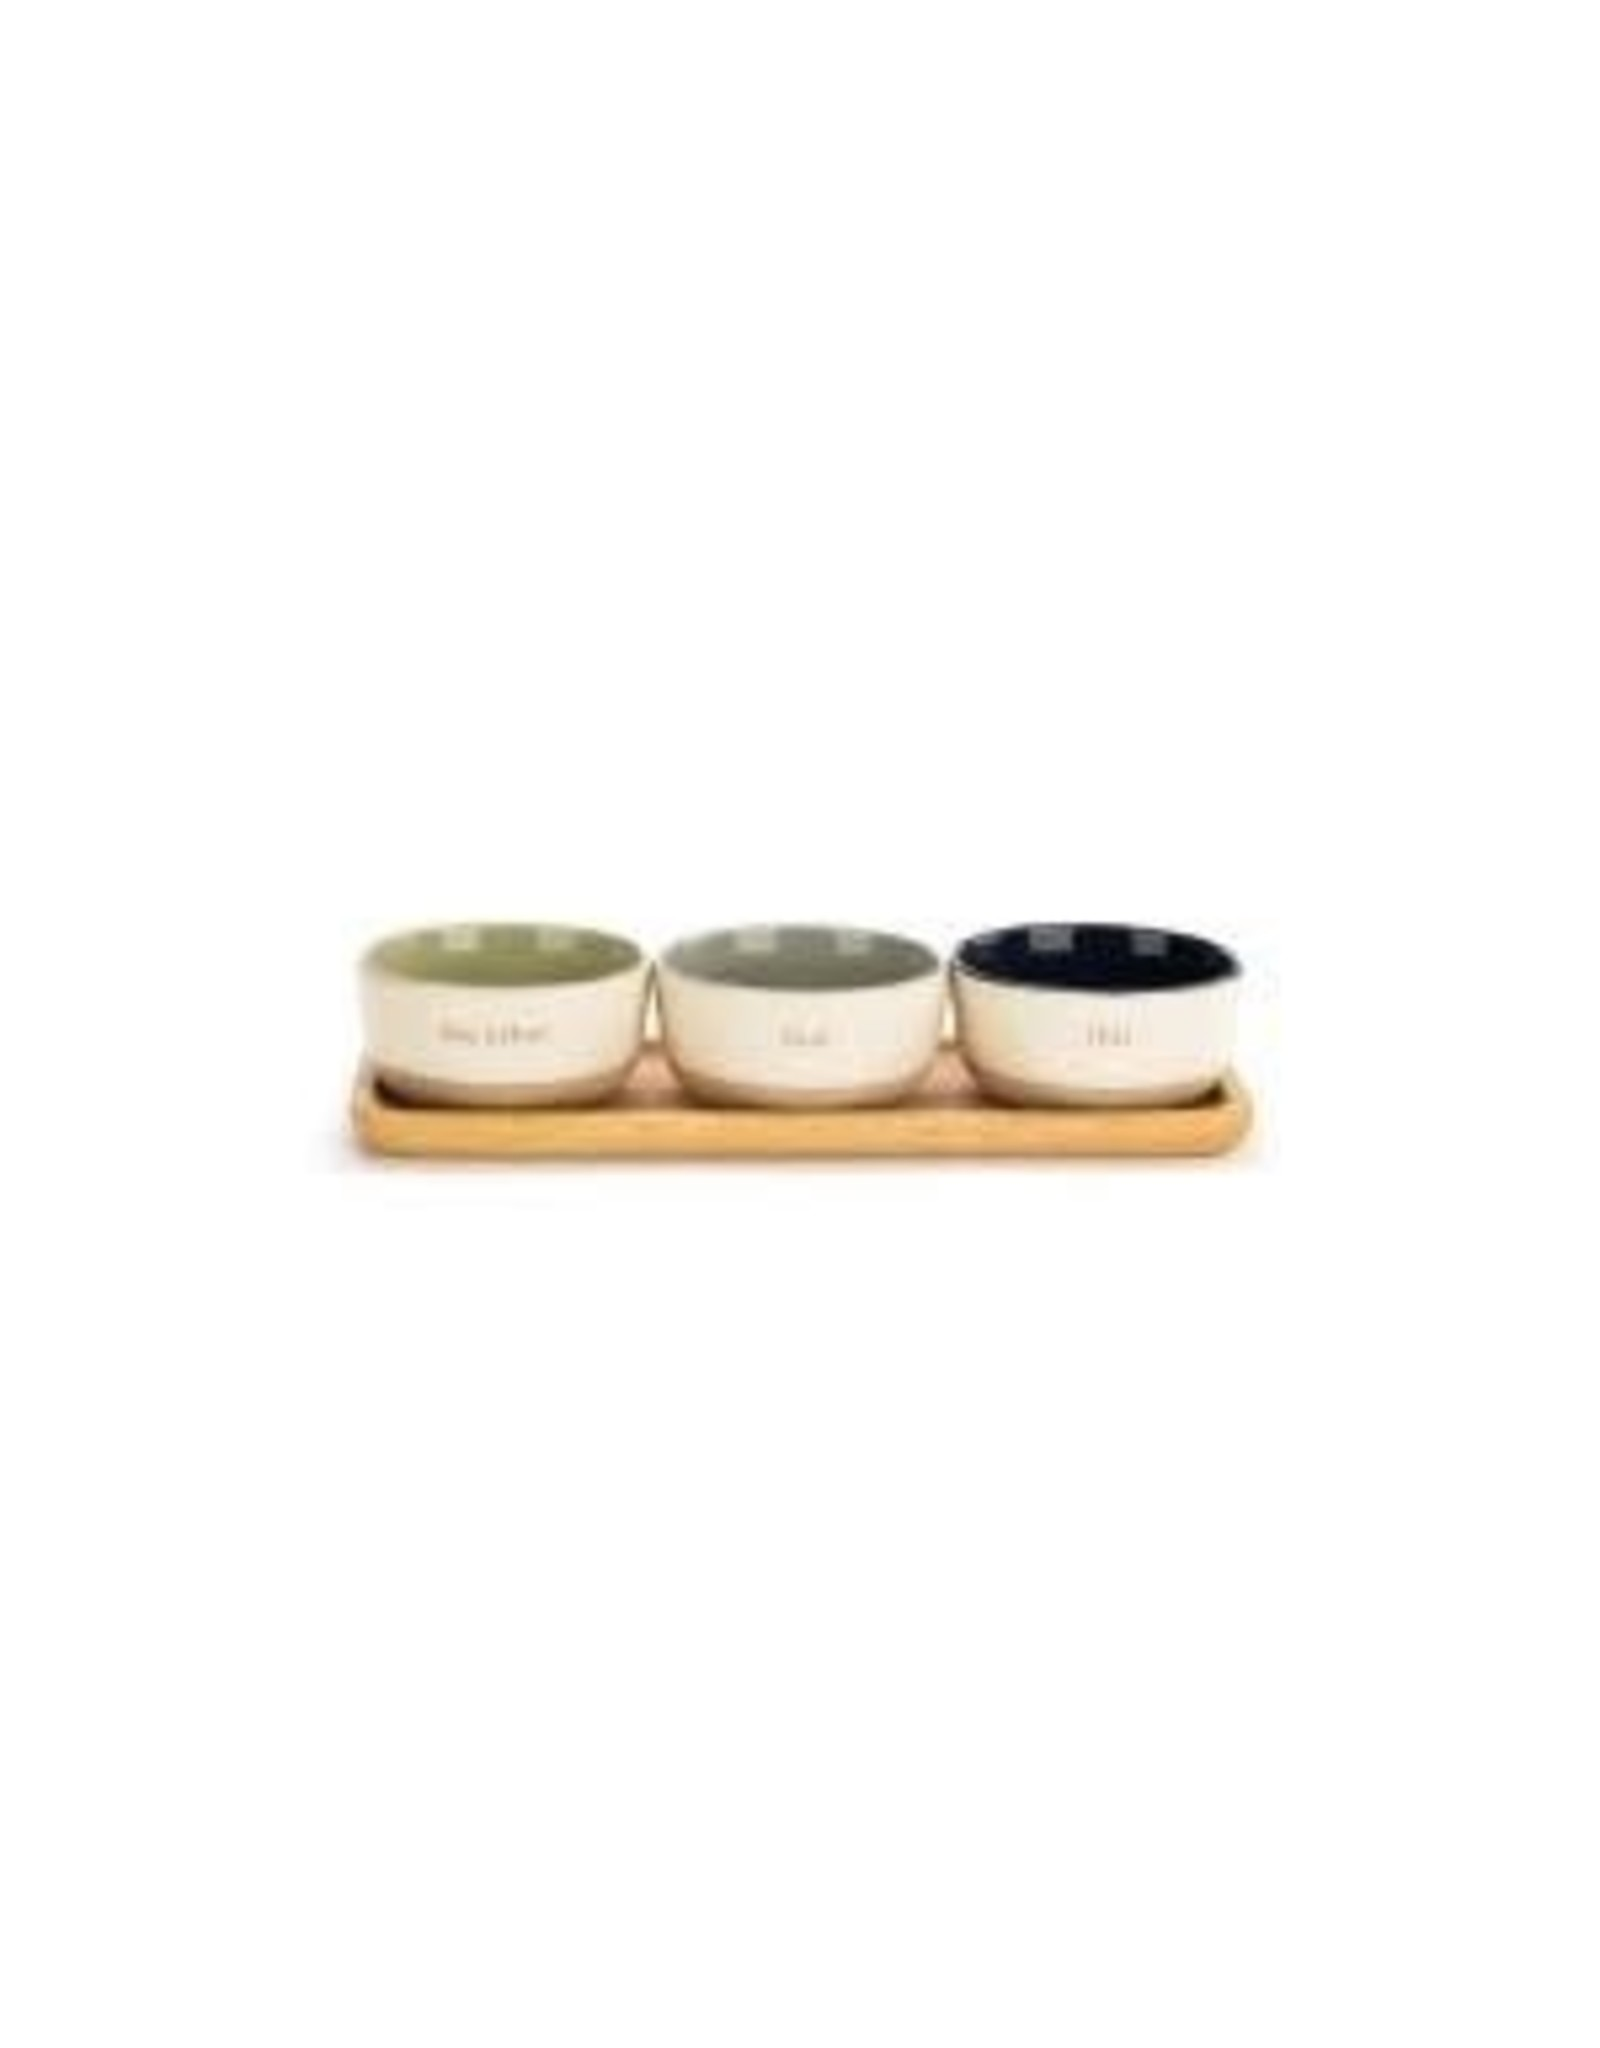 Demdaco SERVING BOWL DIP SET WITH TRAY